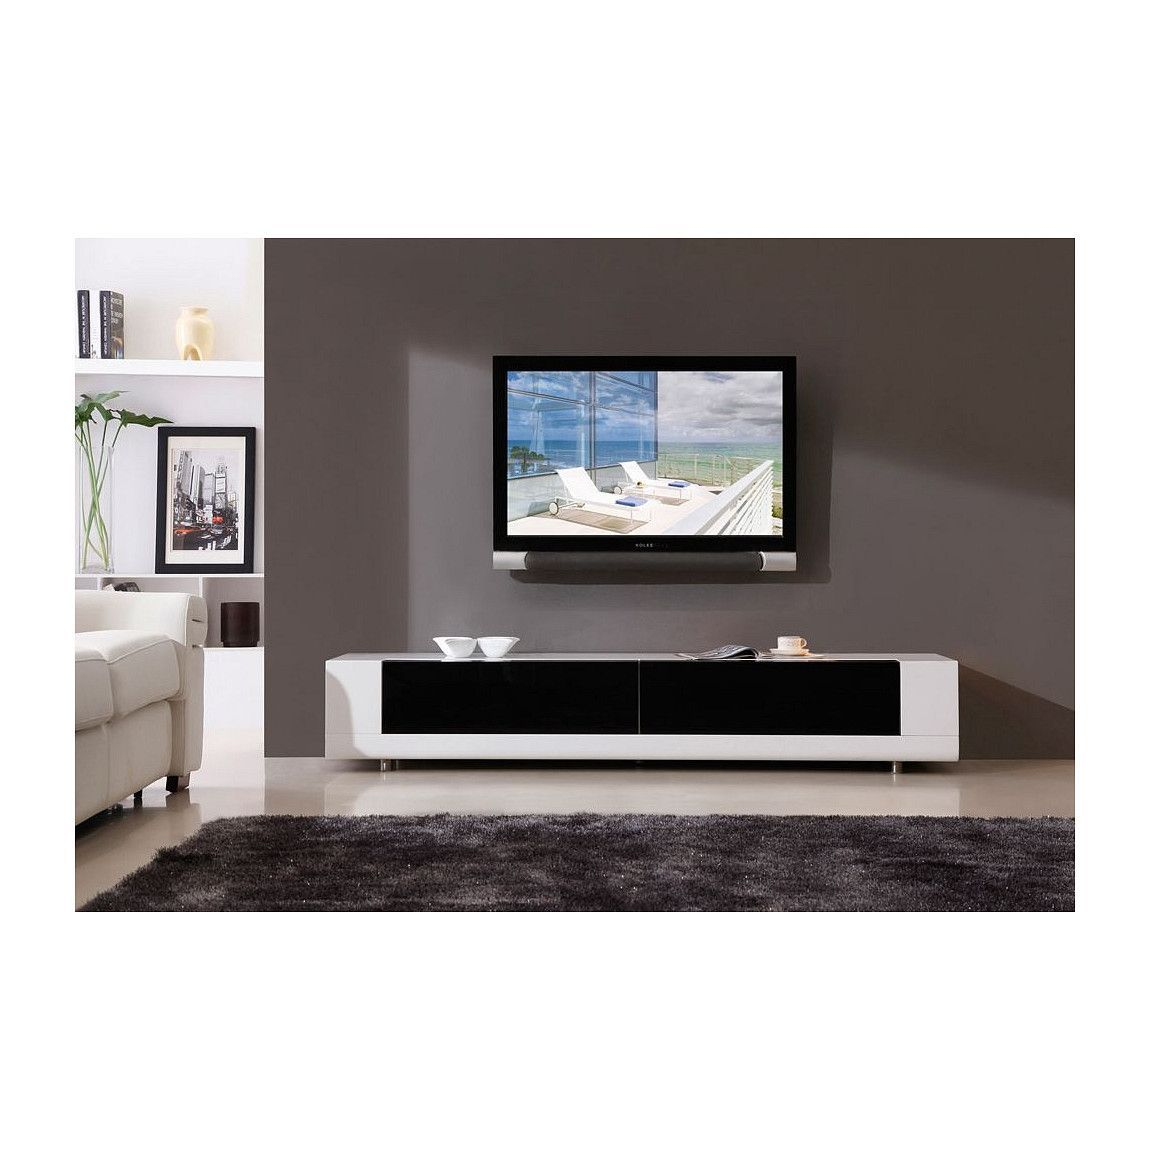 Available in white or black high gloss finish black glass drawers 2 black tempered glass drawers and side accent shelves b modern editor tv stand